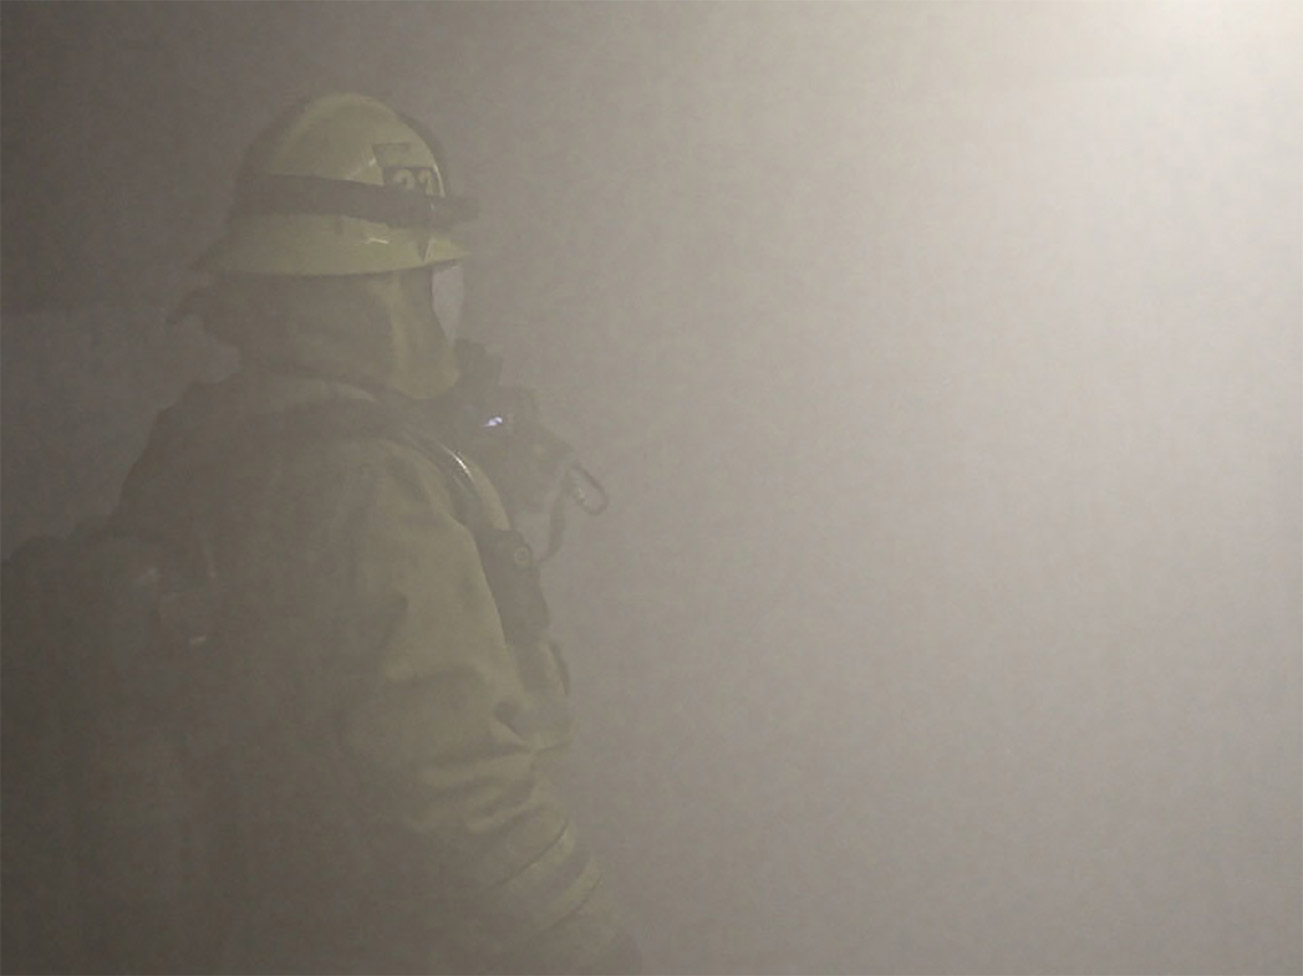 A firefighter stands in smoke